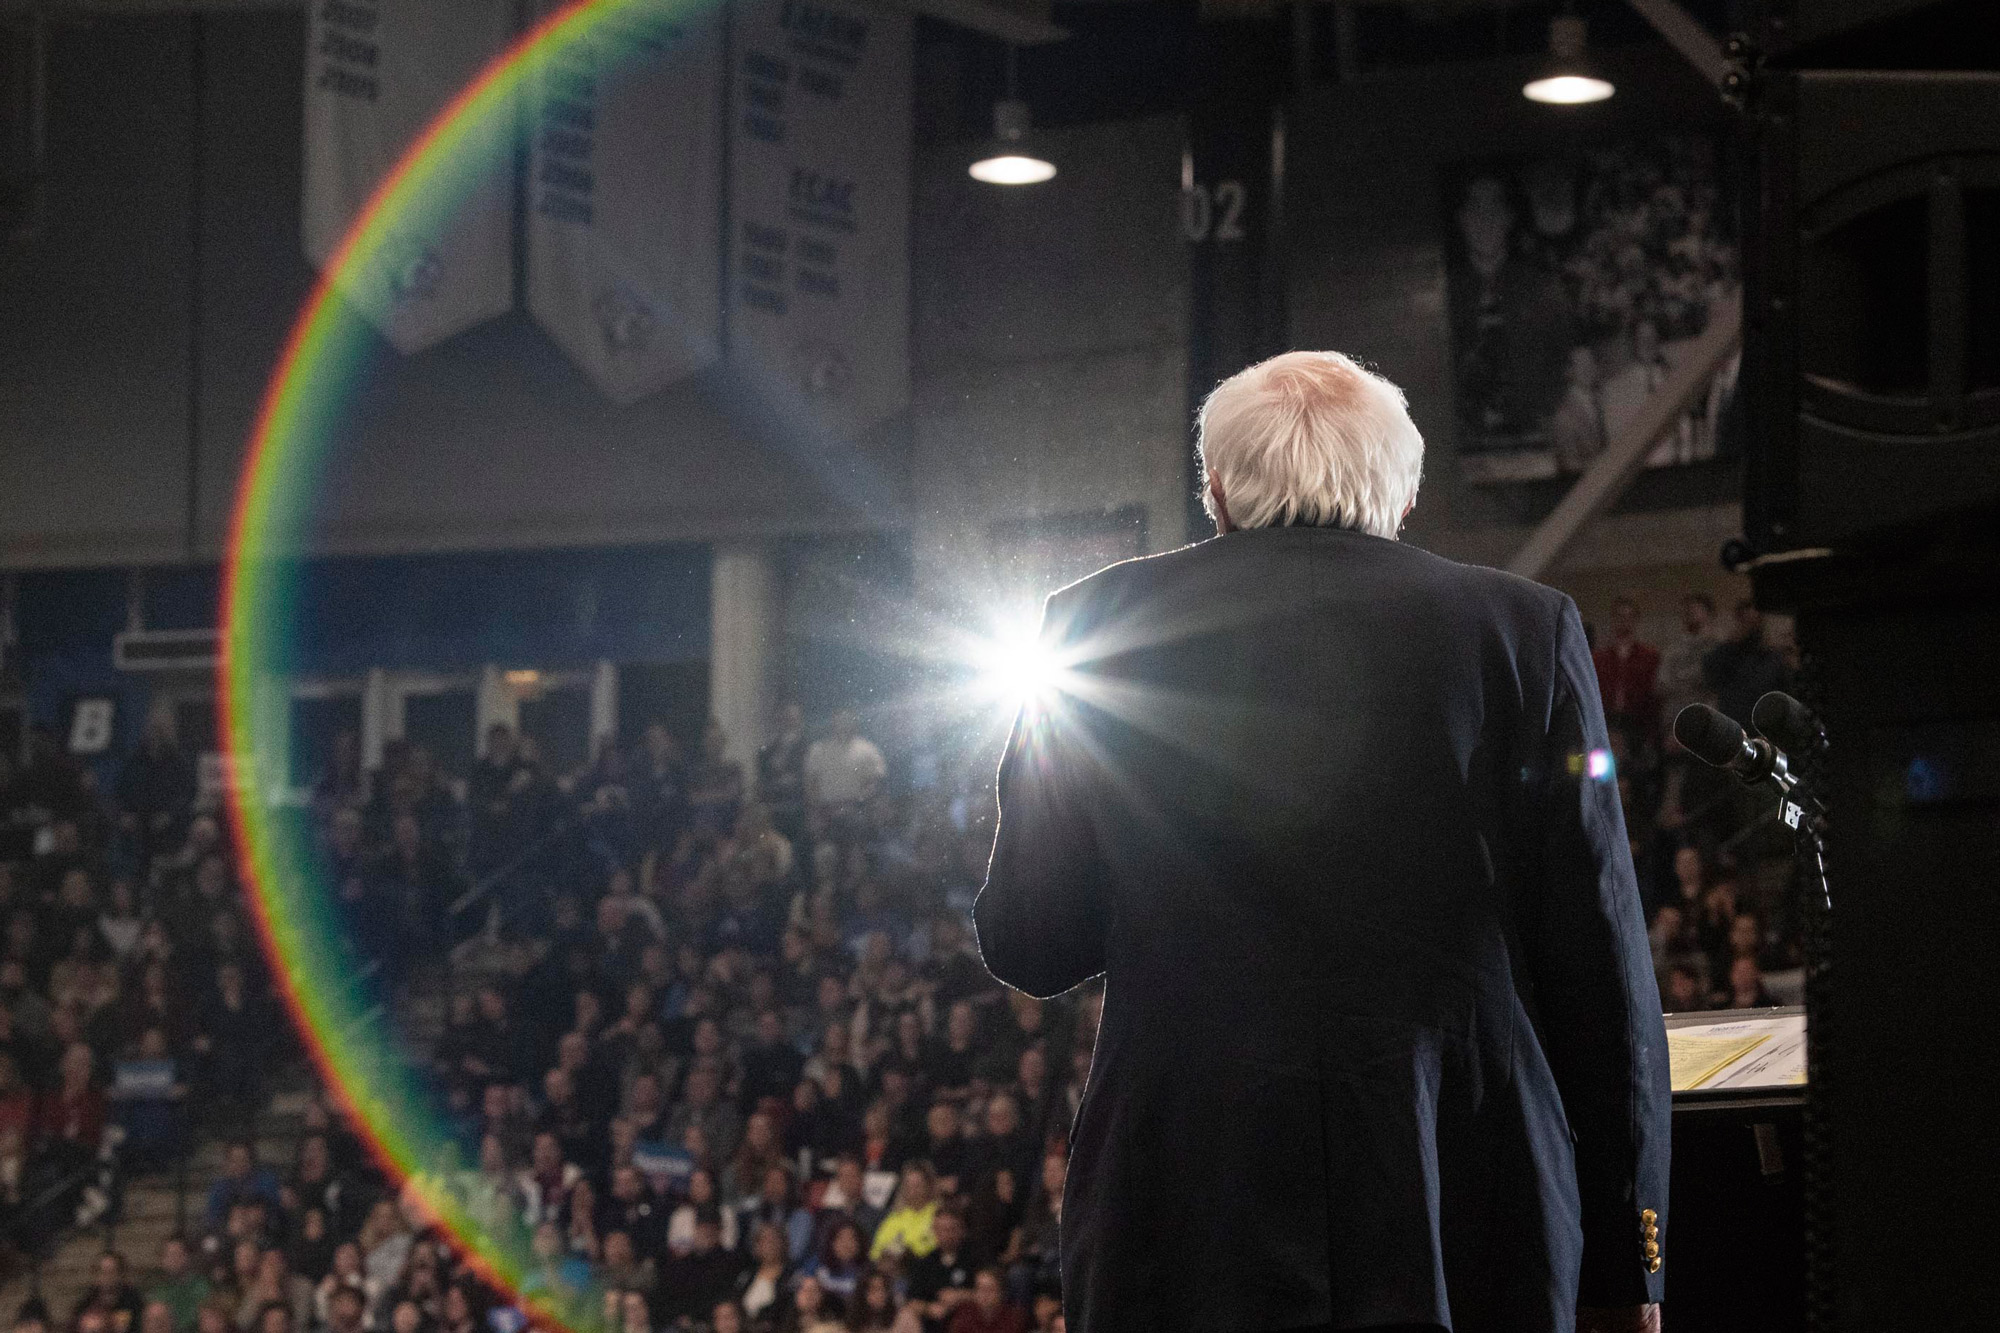 'Like Iowa Should Have Felt:' Scenes from Bernie Sanders' Victory March in New Hampshire